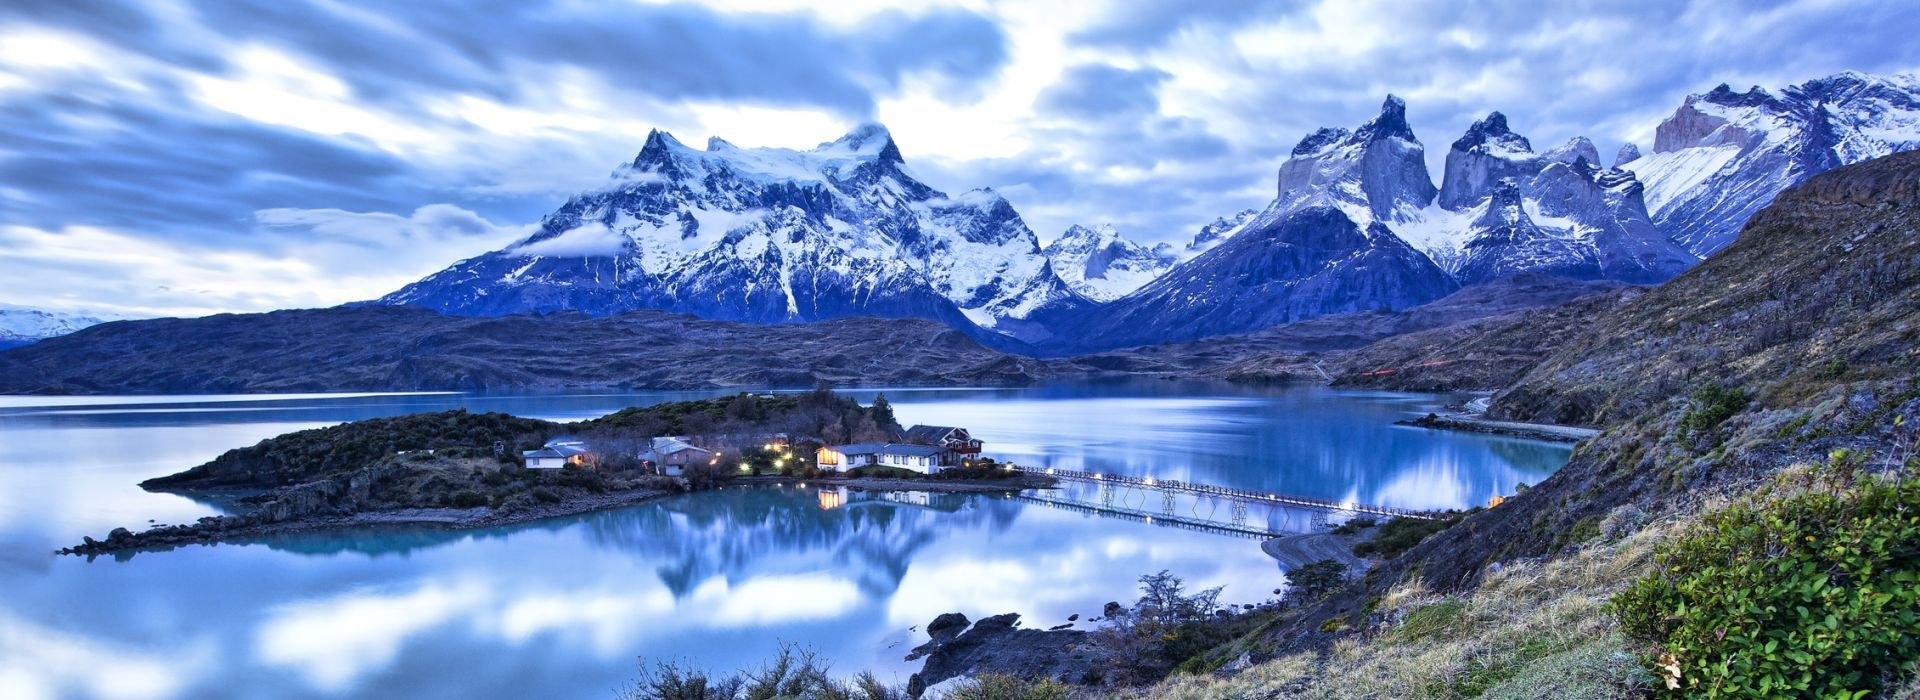 Sightseeing, attractions, culture and history Tours in Chile